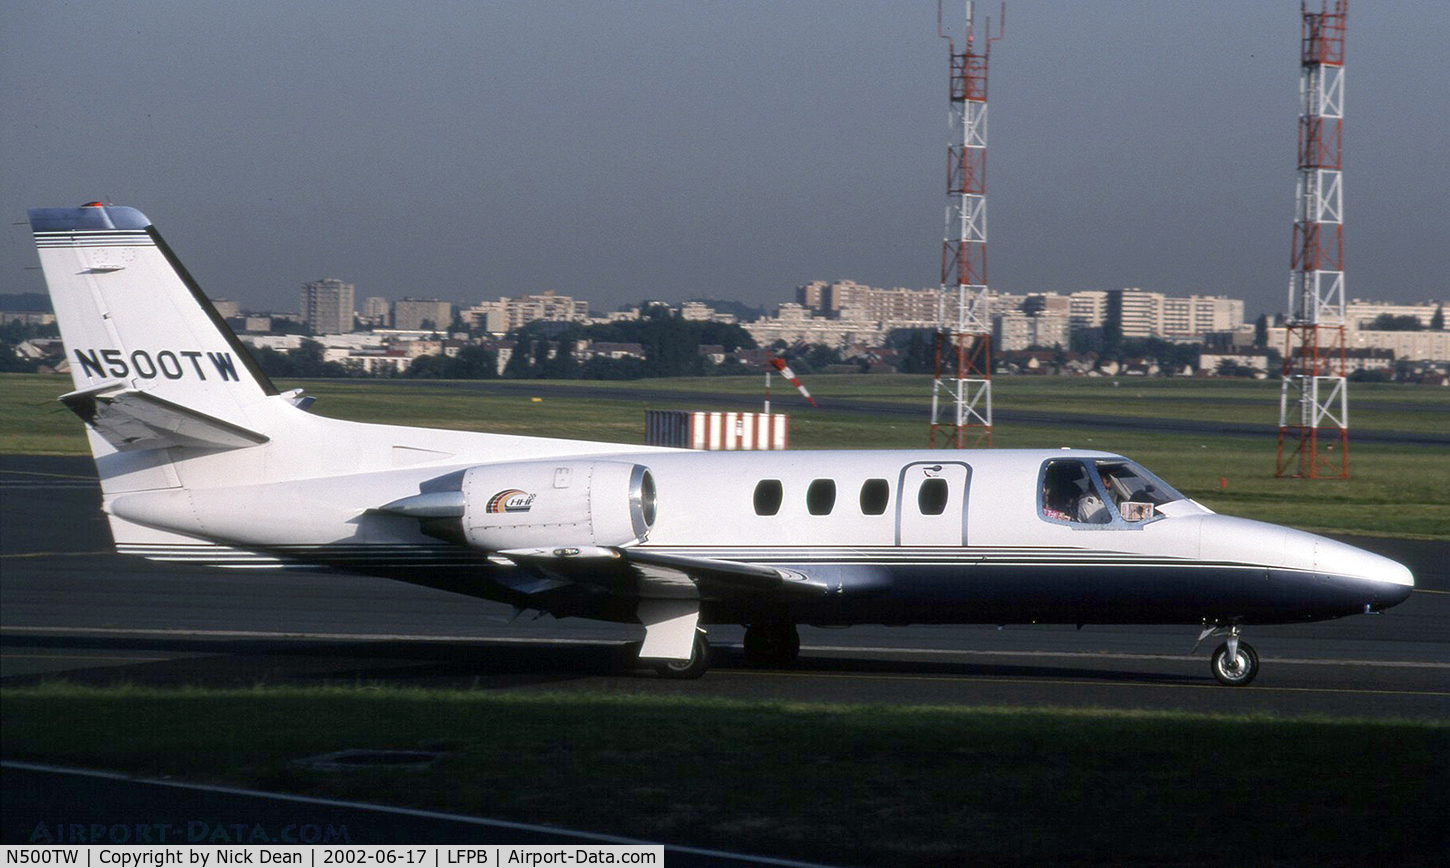 N500TW, 1979 Cessna 501 Citation I/SP C/N 501-0127, LFPB